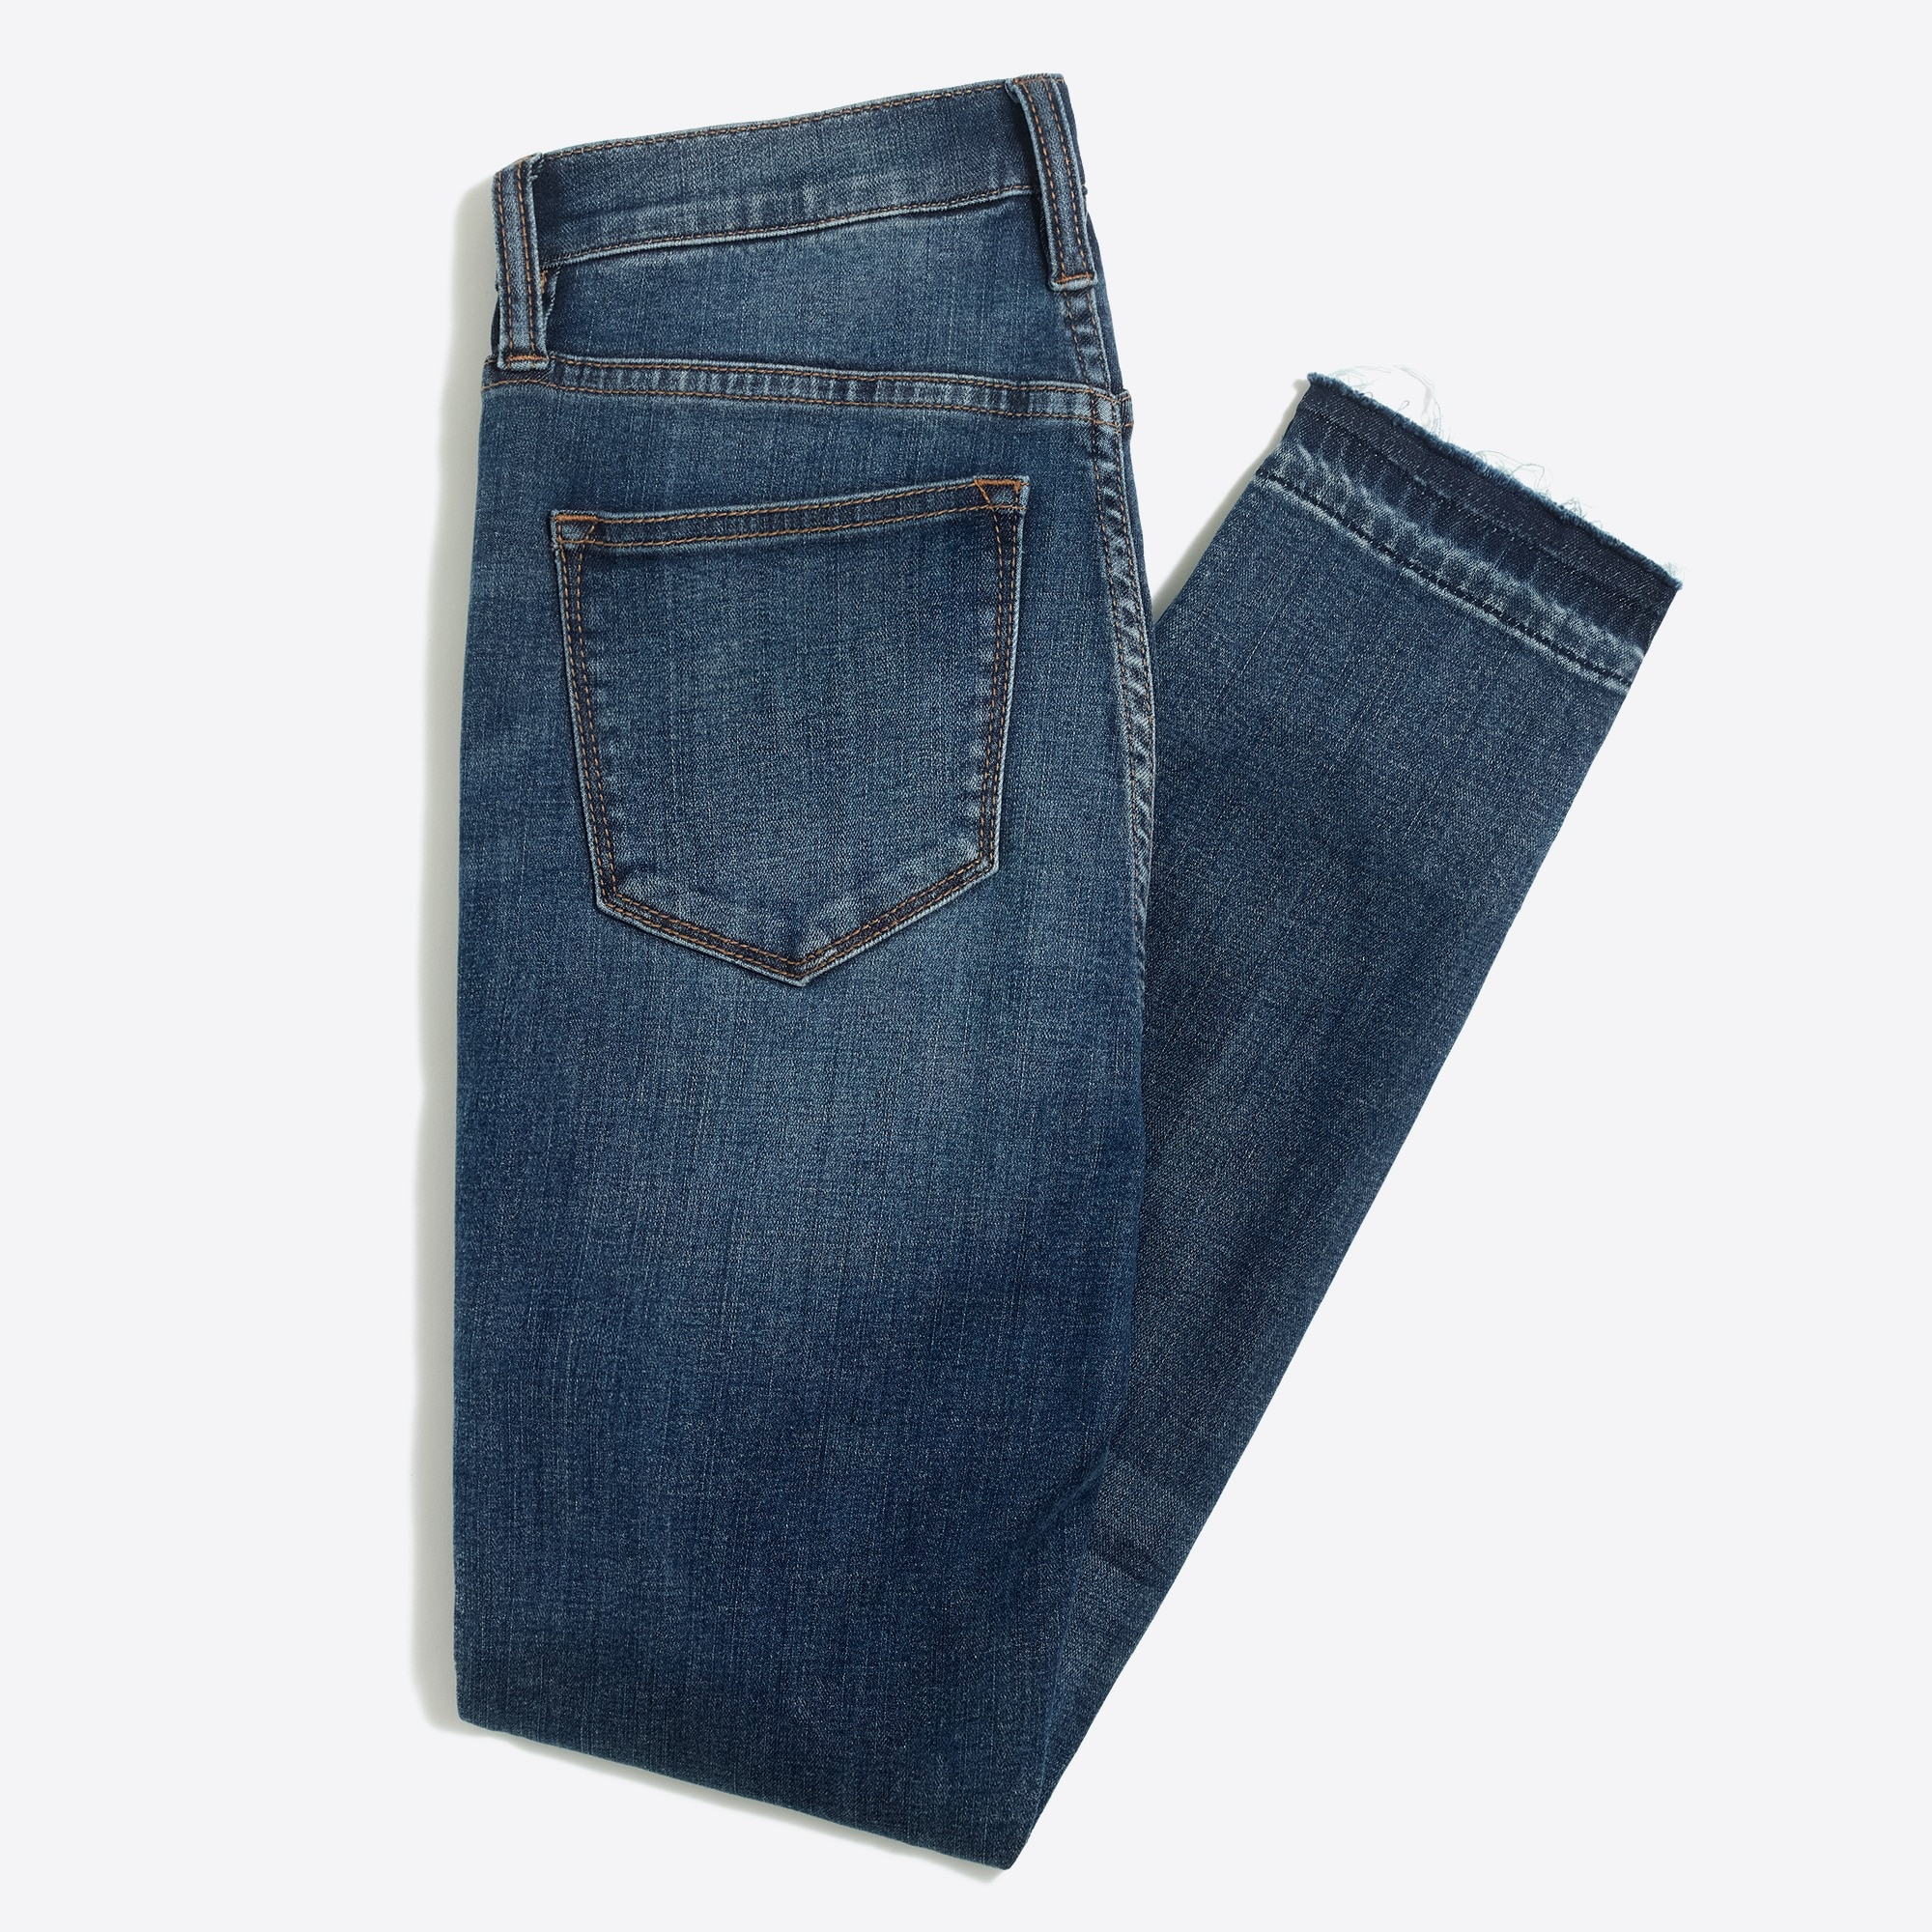 "Image 5 for 8"" Mid-rise skinny jean with let-down hem"